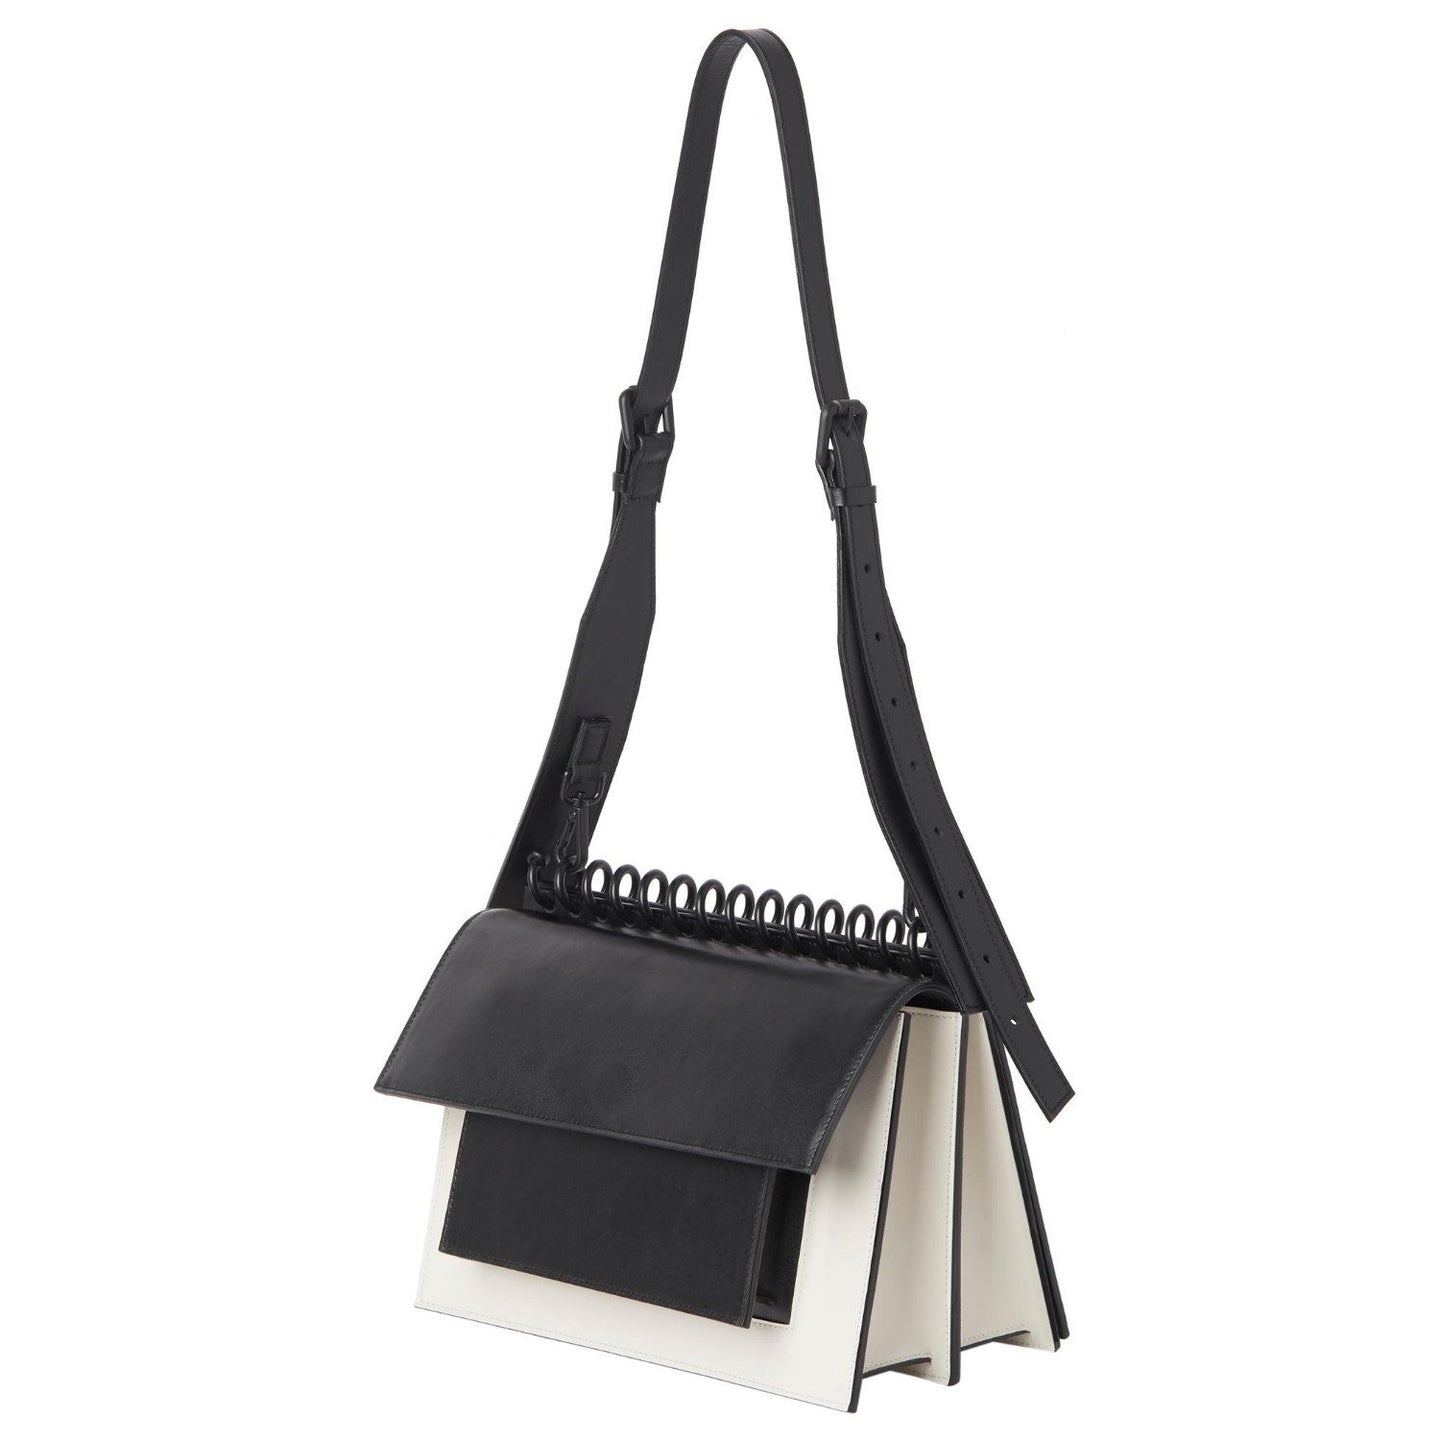 ANIMA | OFFWHITE & BLACK bags from atribut curated by pu·rist